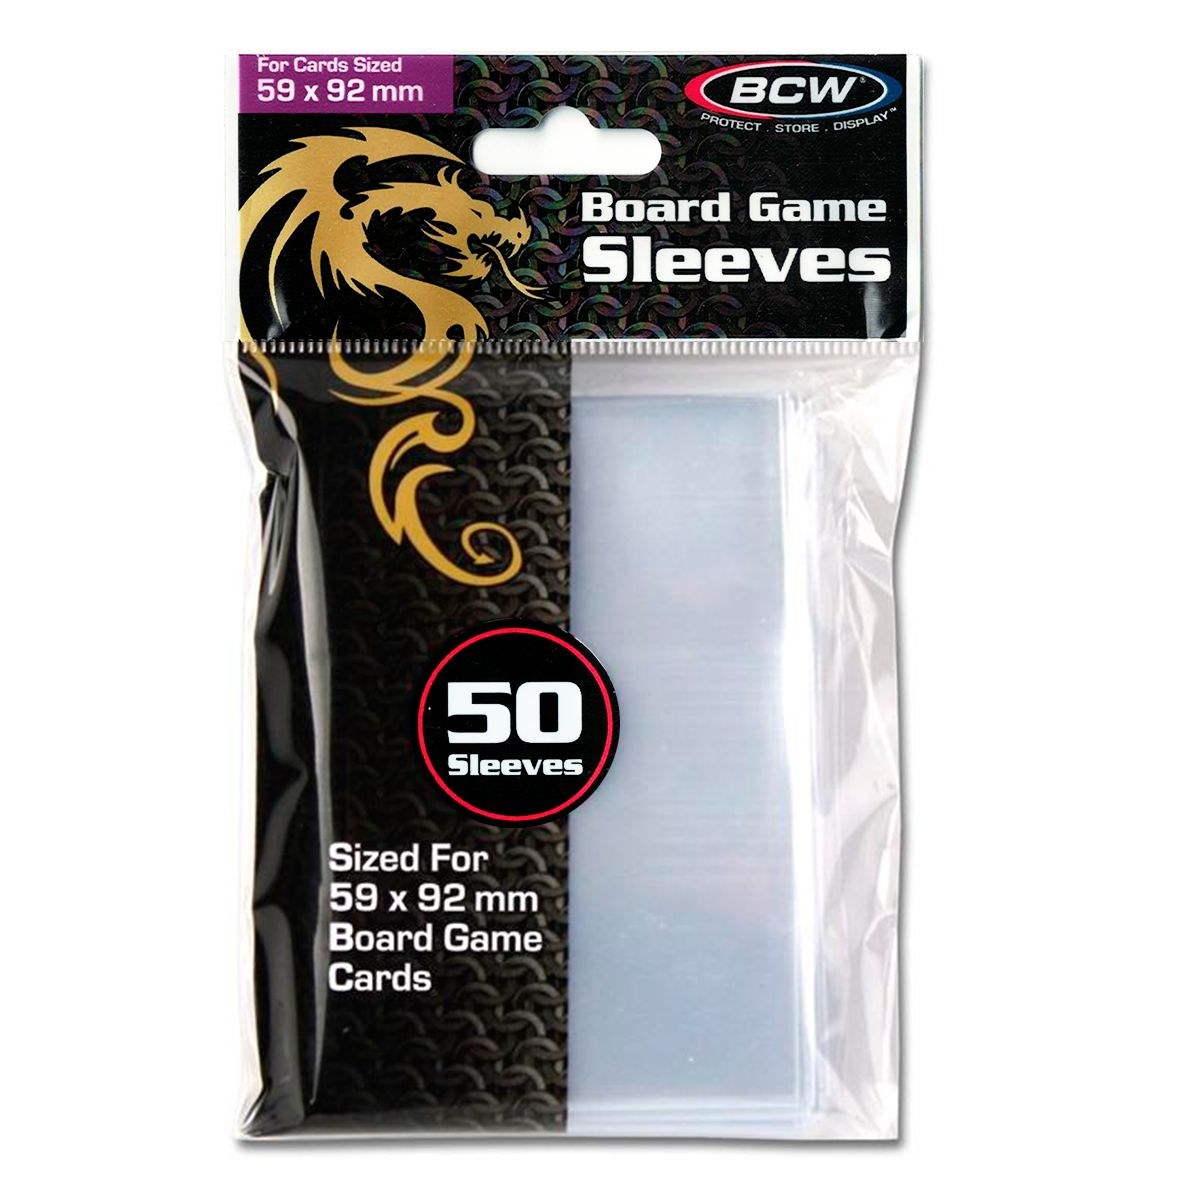 Sleeves Transparente Shield BCW Euro 50 unidades